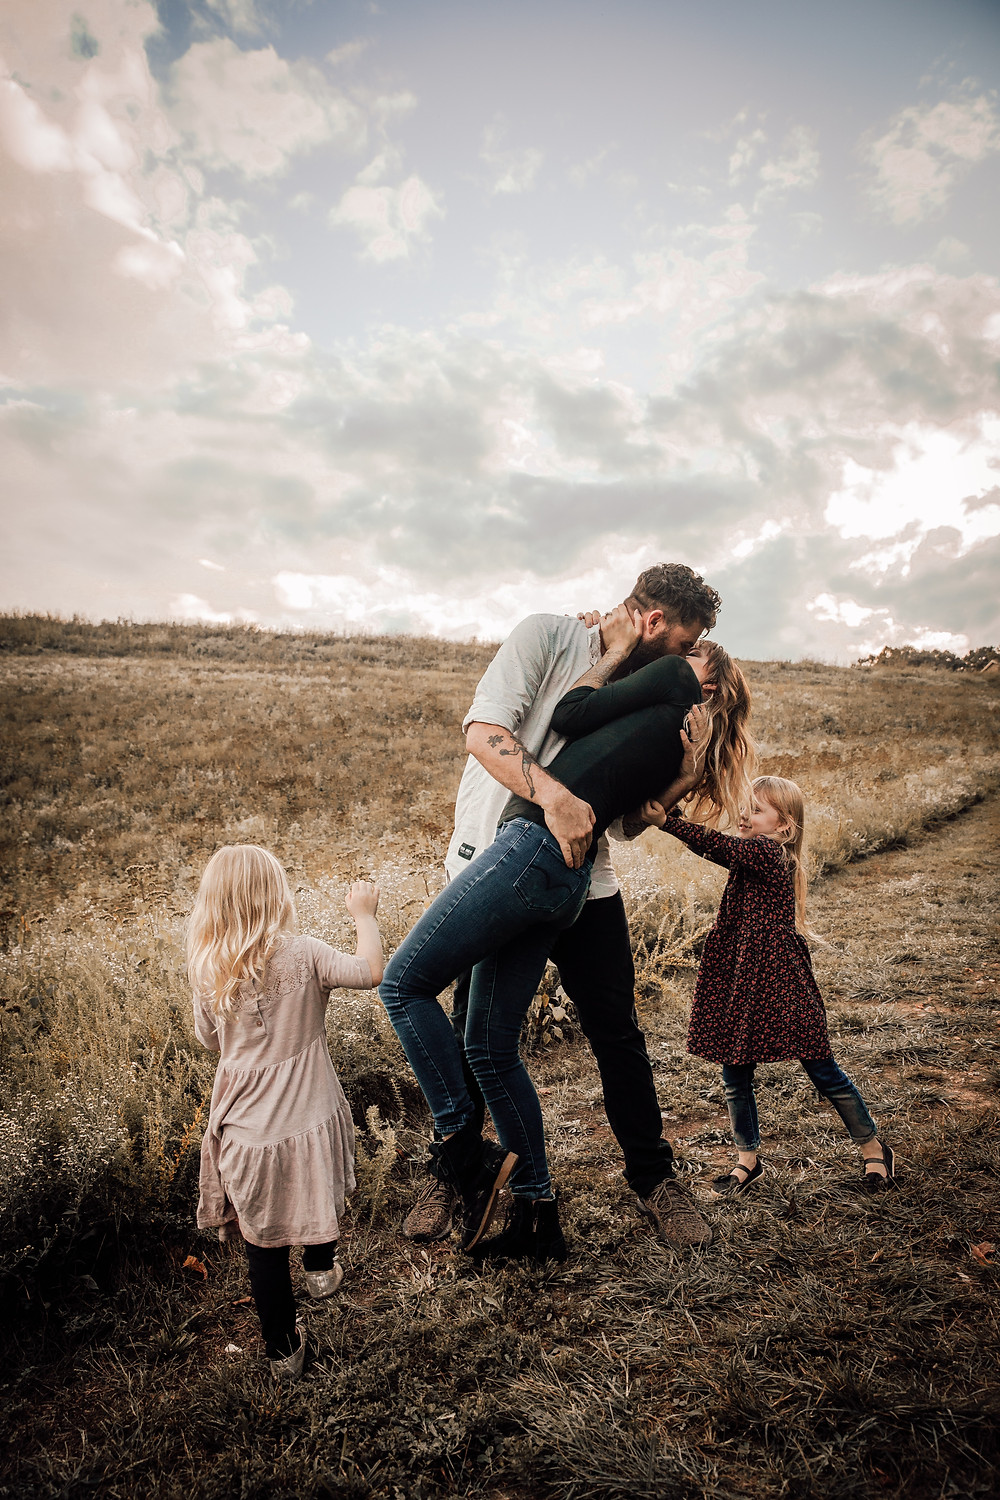 A family photoshoot session on the outskirts of the country side